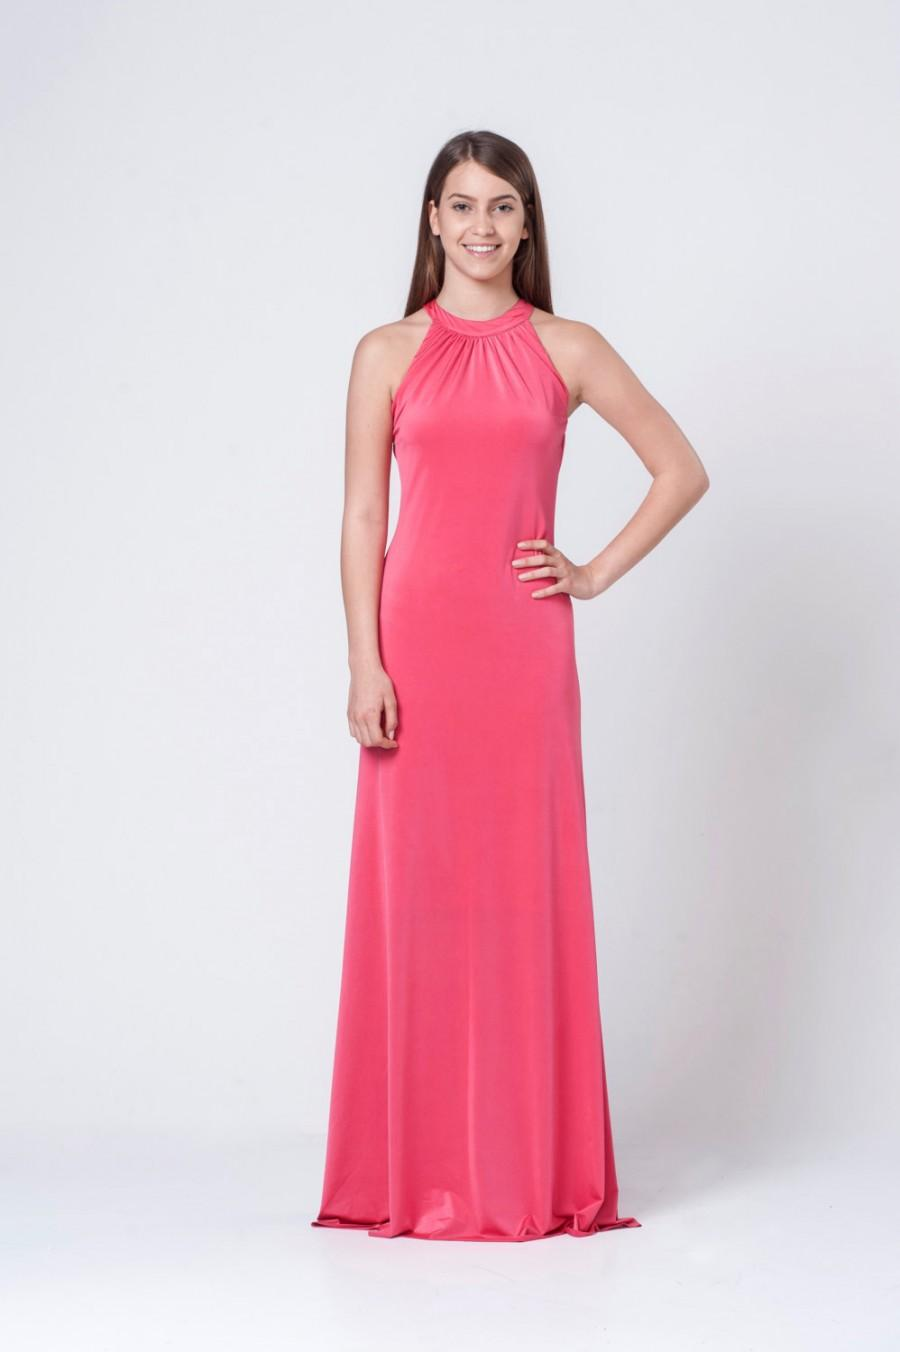 e0f4fc509a Coral pink Halter neck dress - Coral pink back opening bridesmaid maxi dress  - Coral pink off Shoulders maxi dress